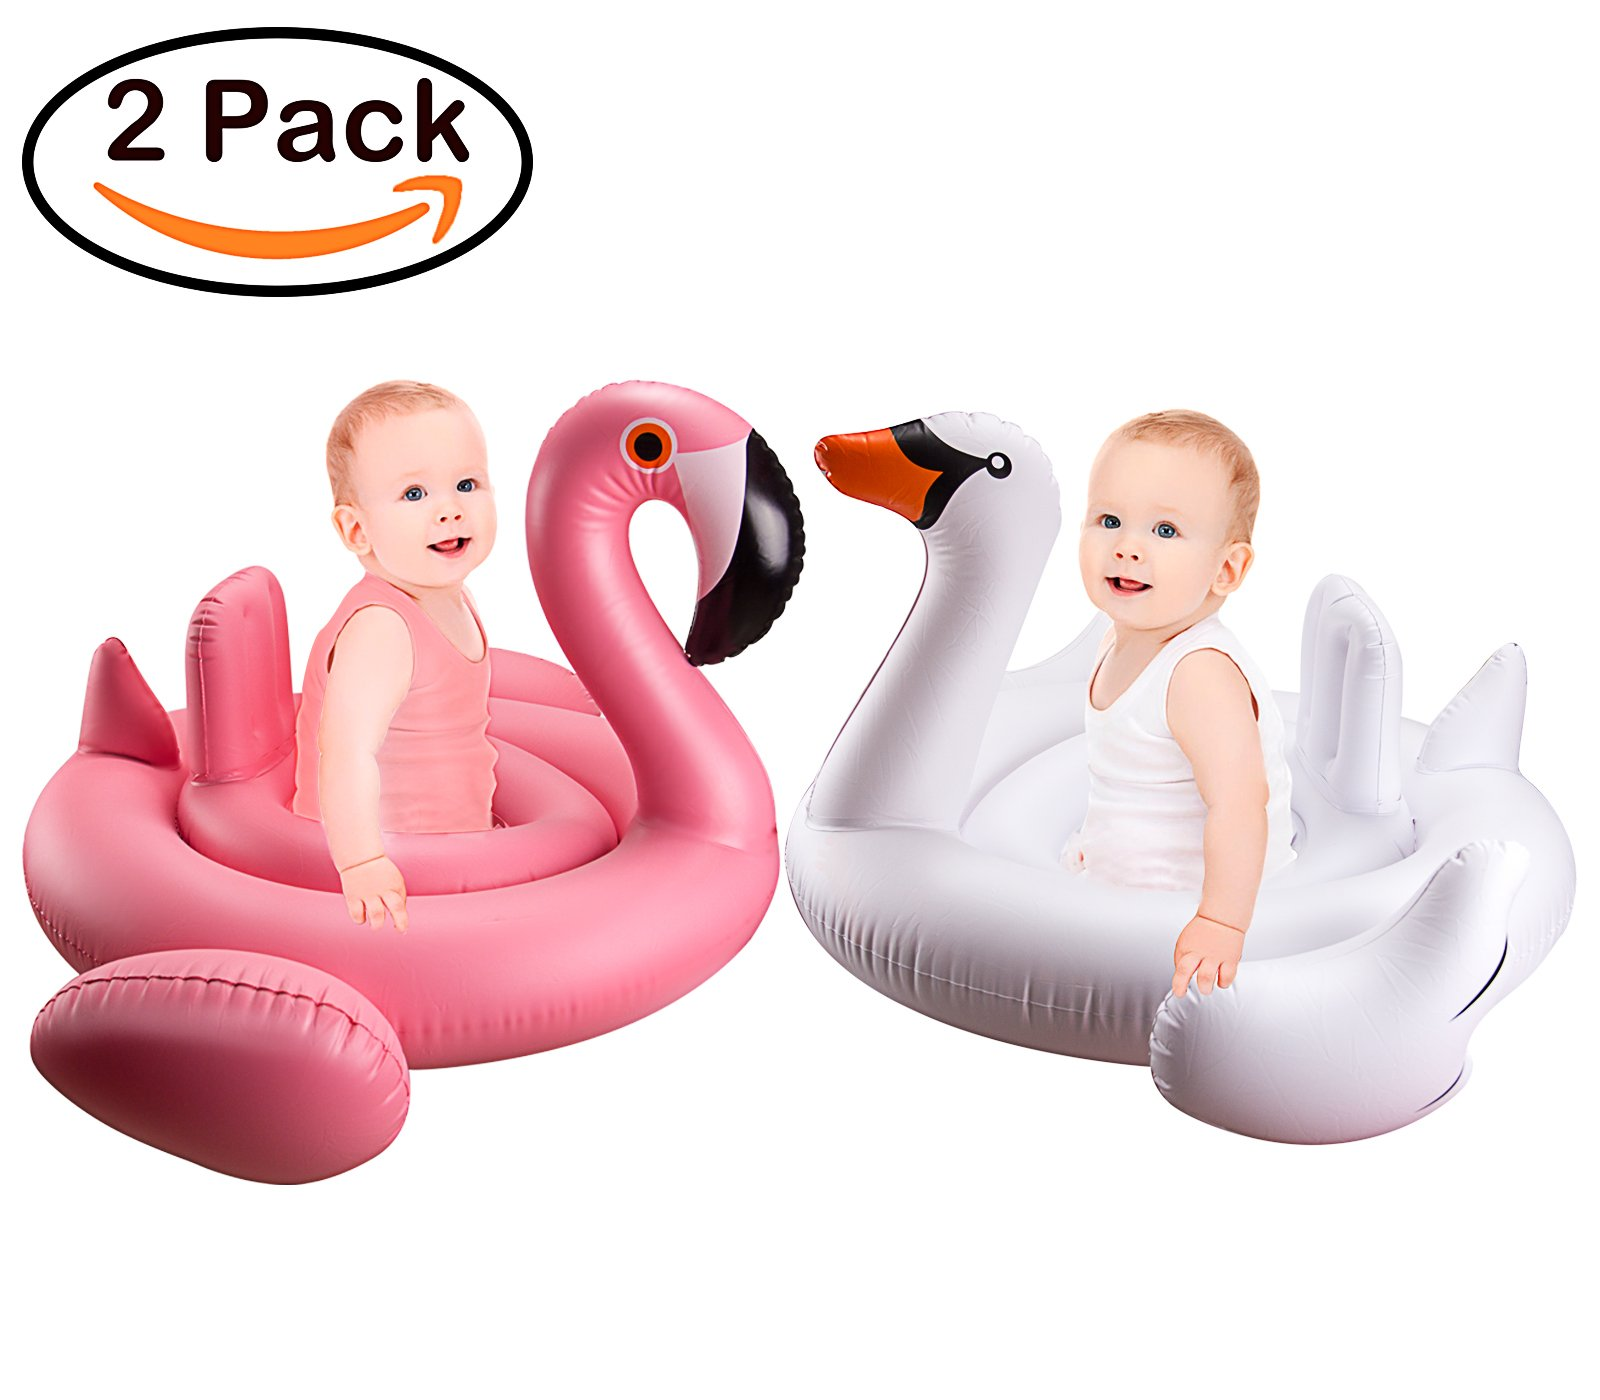 R ? HORSE Baby Flamingo Inflatable Pool Float - 2 Pack Inflatable Baby Infant Flamingo Swim Ring Pool Float - Popular Baby Infant Swimming Toy - Learn Swimming for Aged 6-36 Months, 36 x 26 Inch